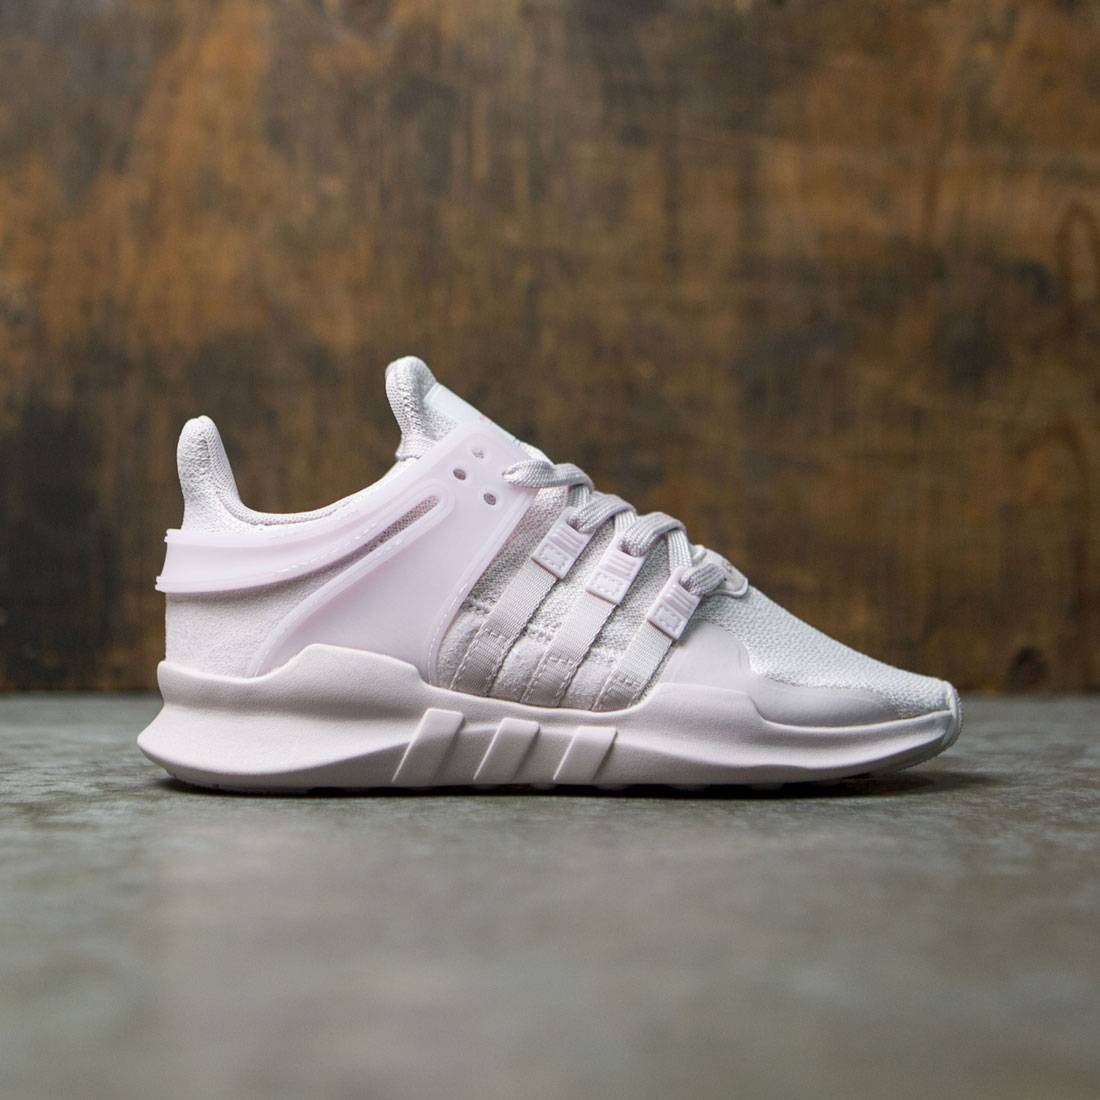 official photos 239e6 1be9e Adidas Women EQT Support ADV purple ice purple footwear whit